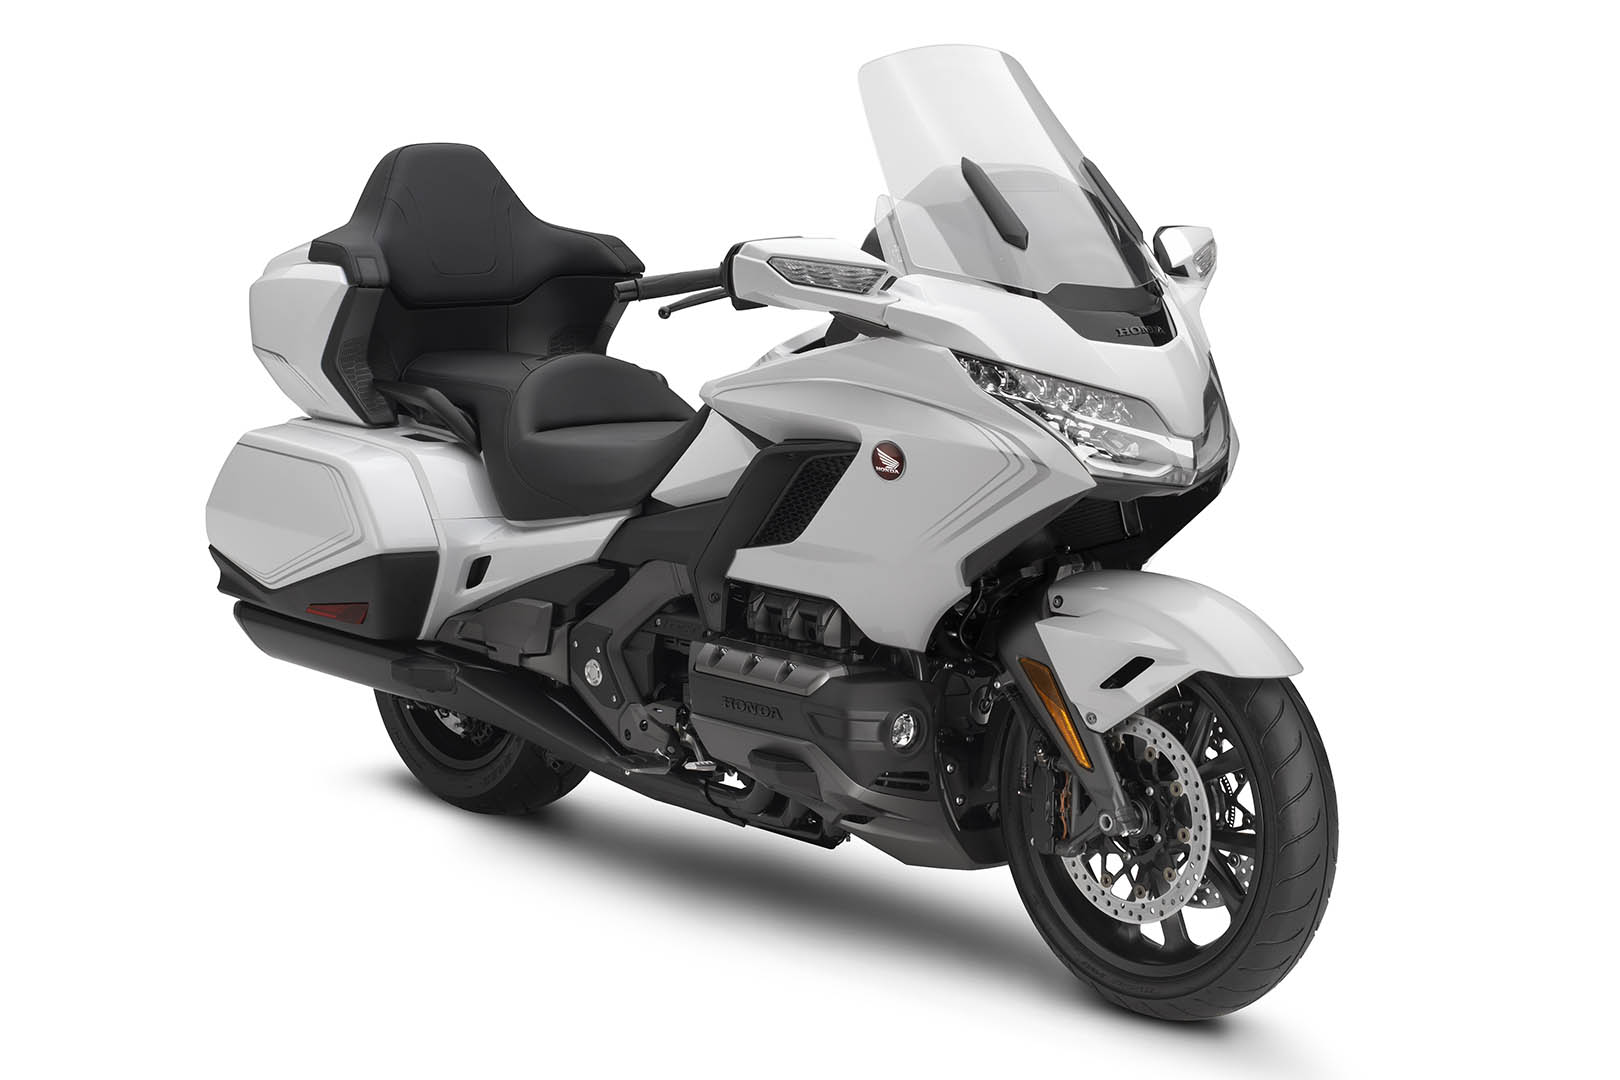 2020 Honda Gold Wing Tour Buyers Guide: Specs & Prices